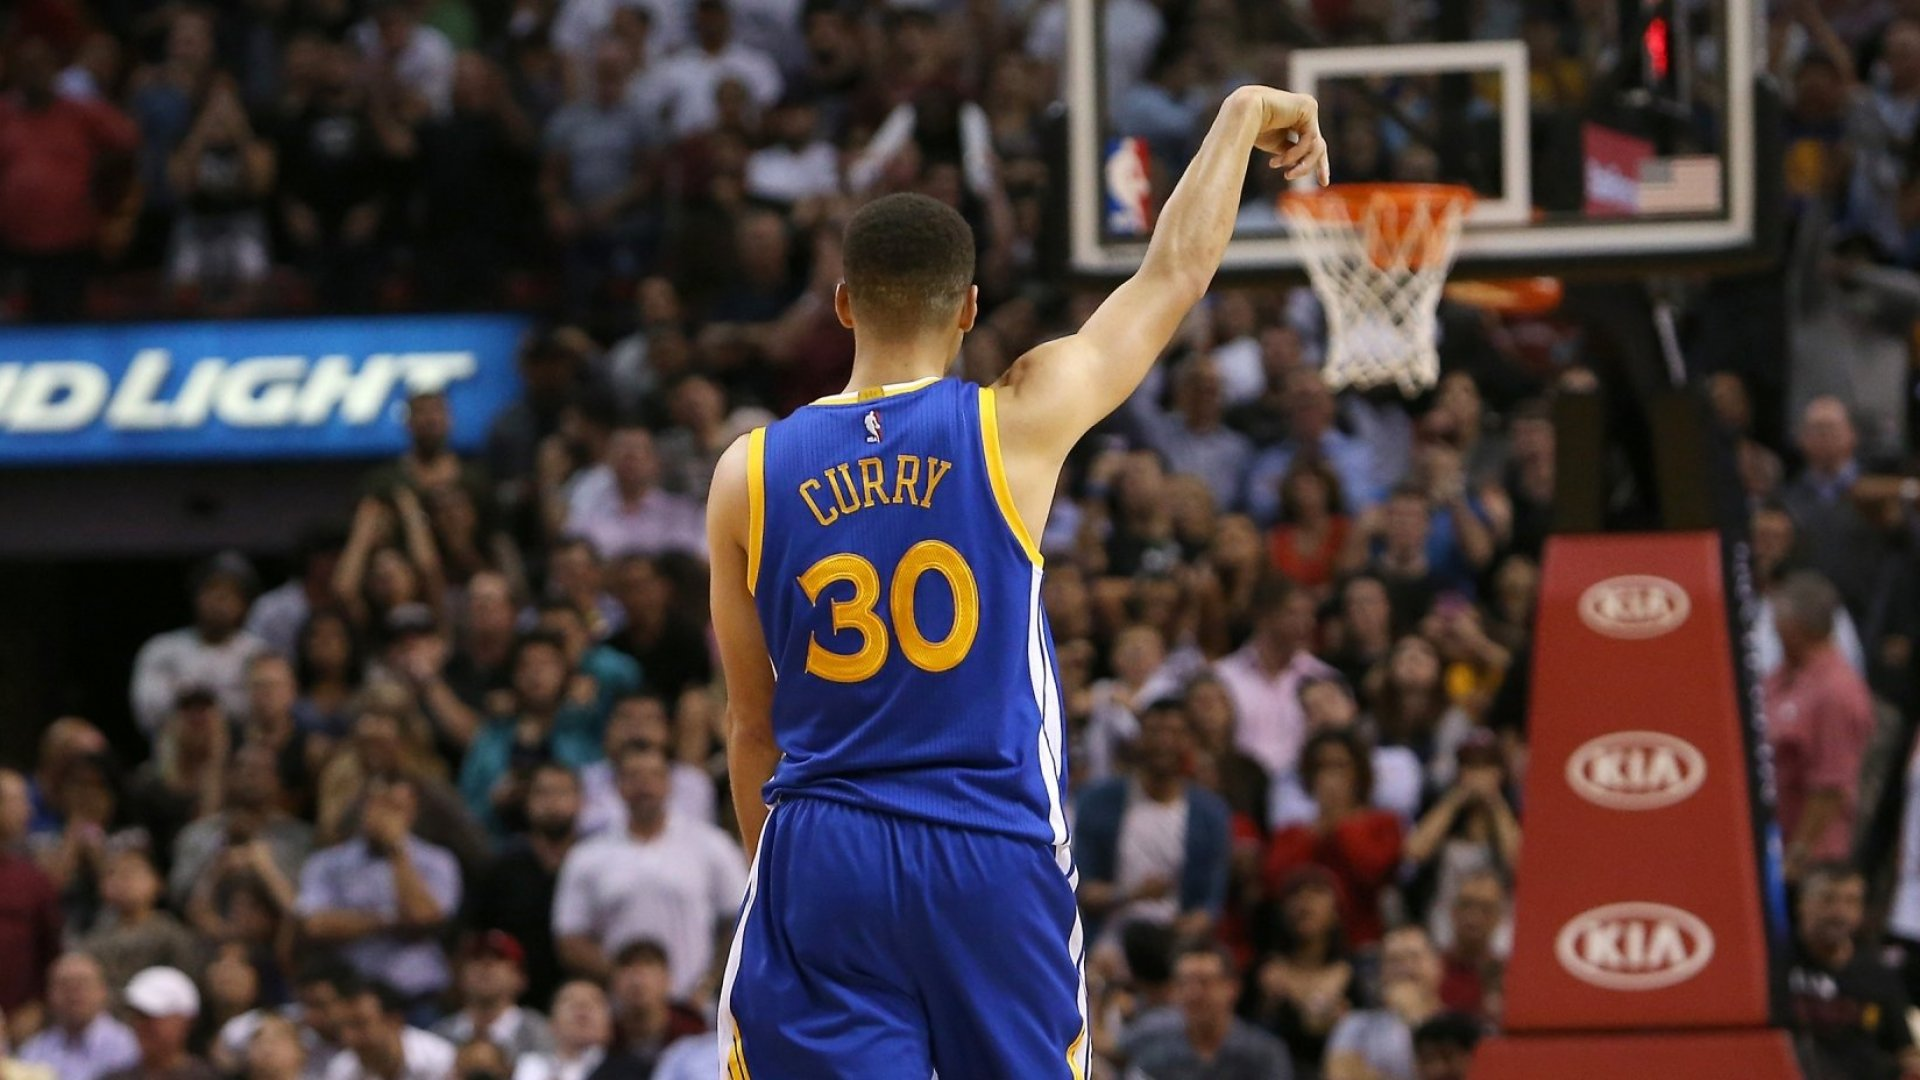 Steph Curry's Inspiring New Commercial Teaches a Lesson in Emotional Intelligence